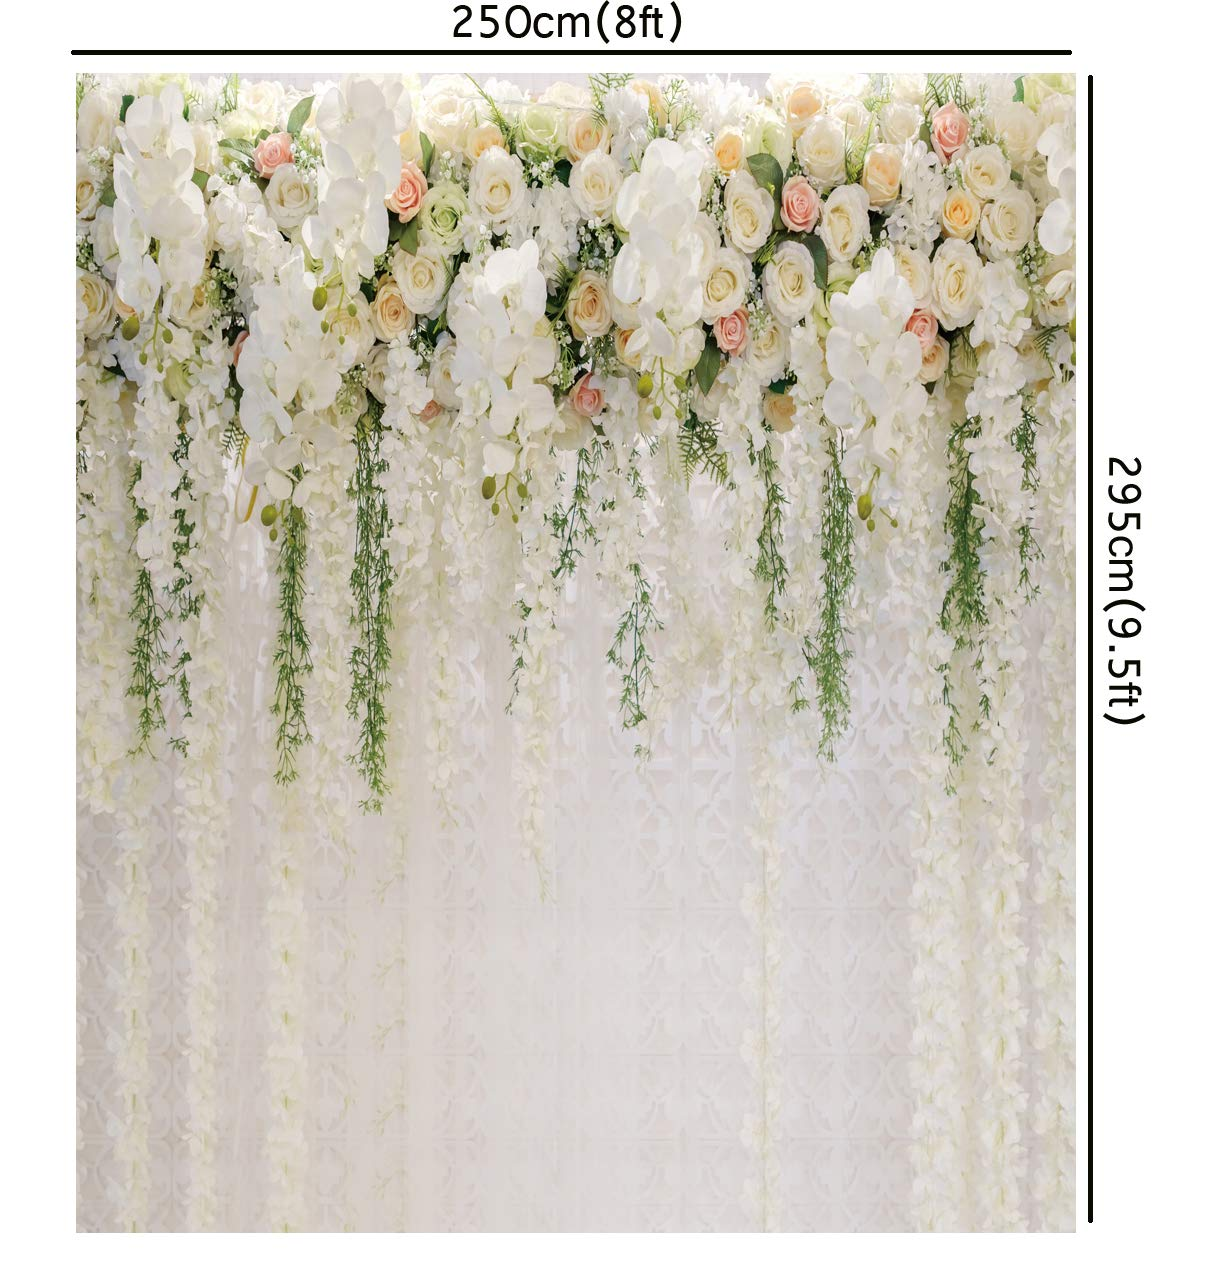 Romantic Wedding Ceremony Backdrop 6x9ft Birthday Polyester Photography Background White Muslin Flowers Petal Black Cages Garden Spring Nature Banquet Rustic Decor Portraits Shoot Photo Prop